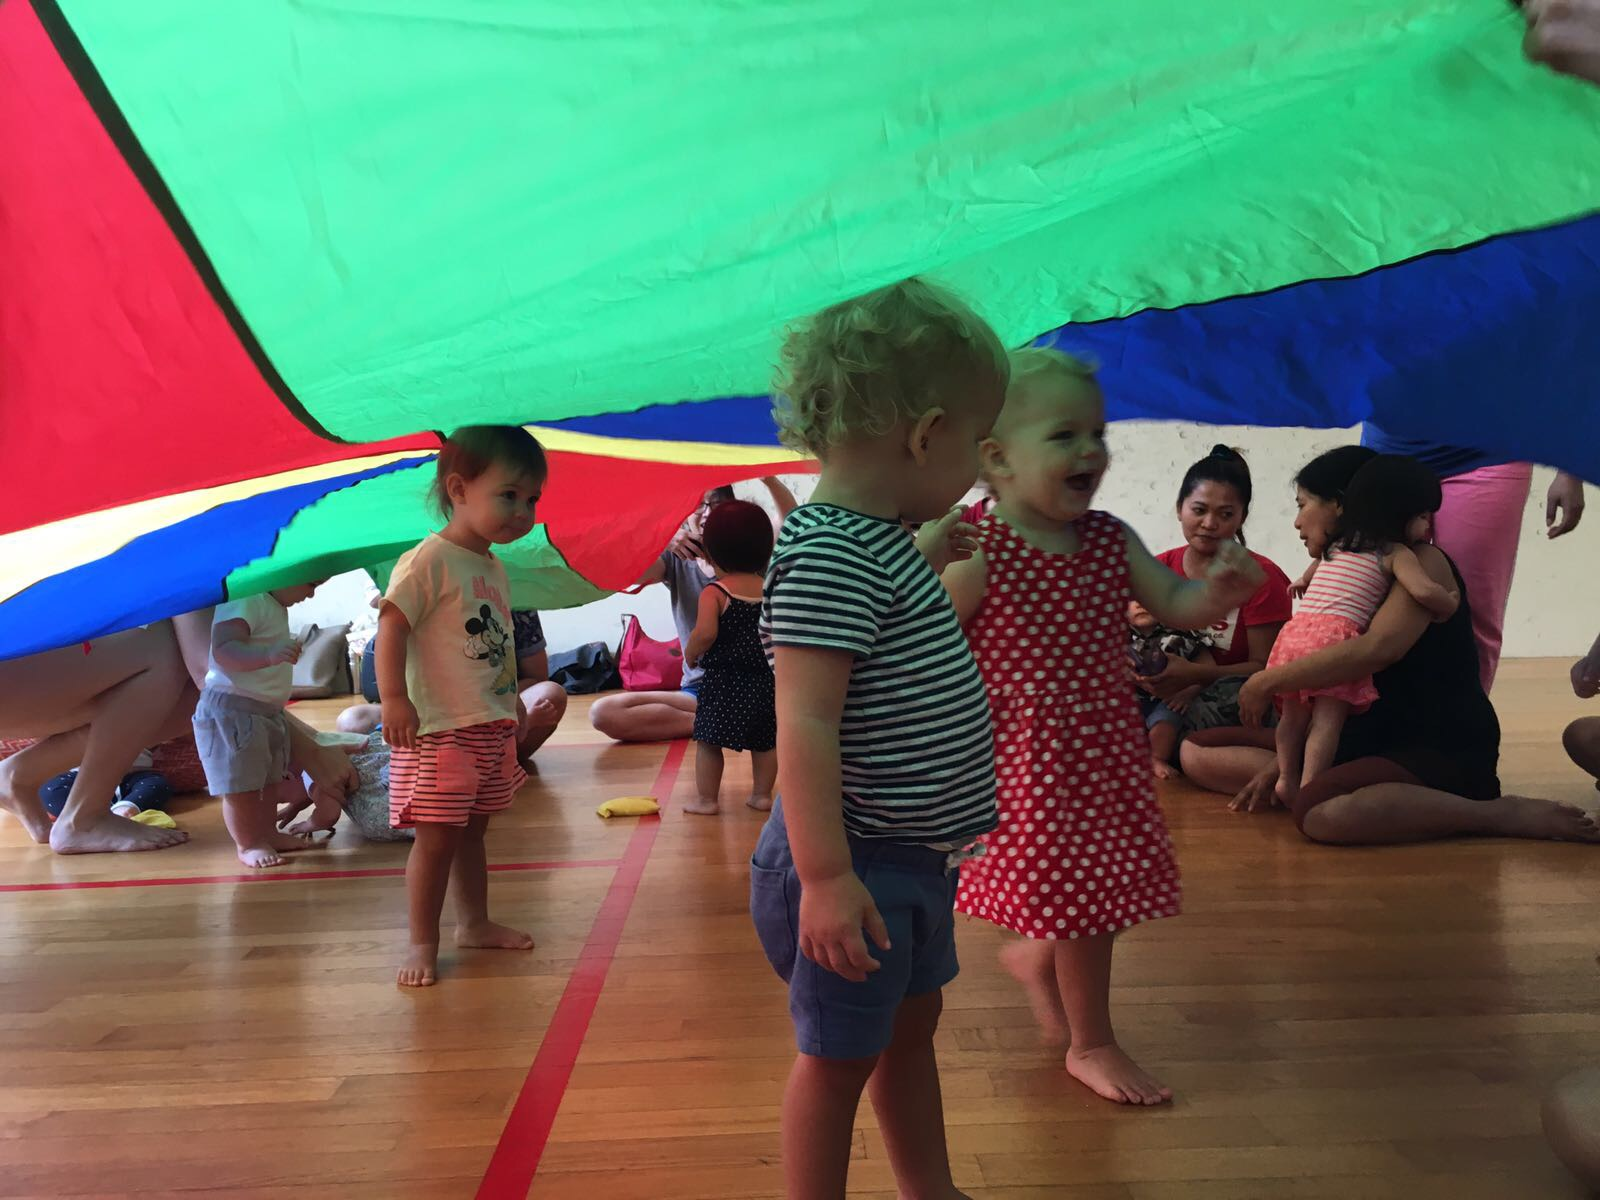 Parachute play and dance!